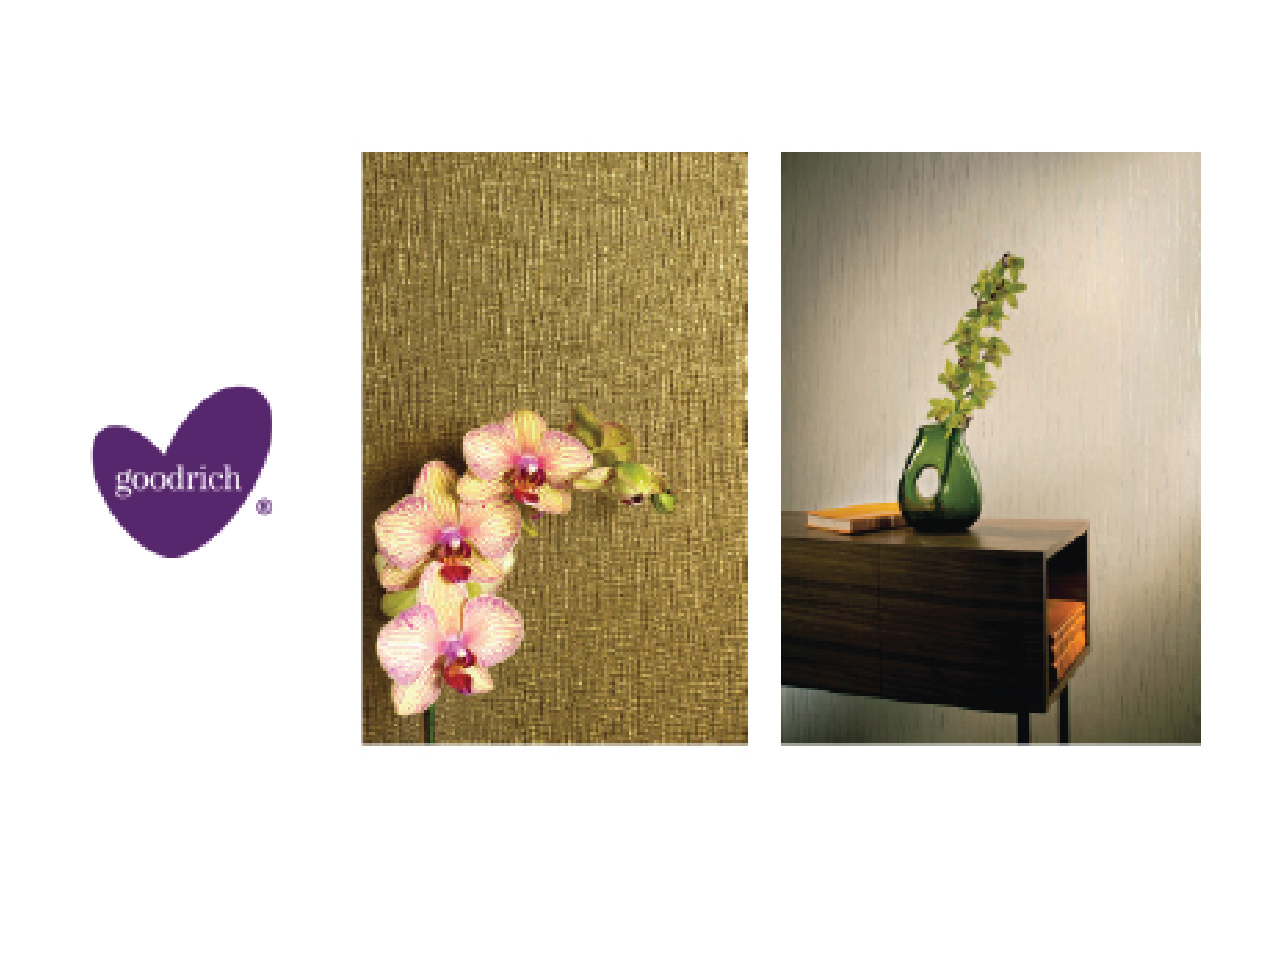 files/product/wallcovering-97765a412e99911.jpg